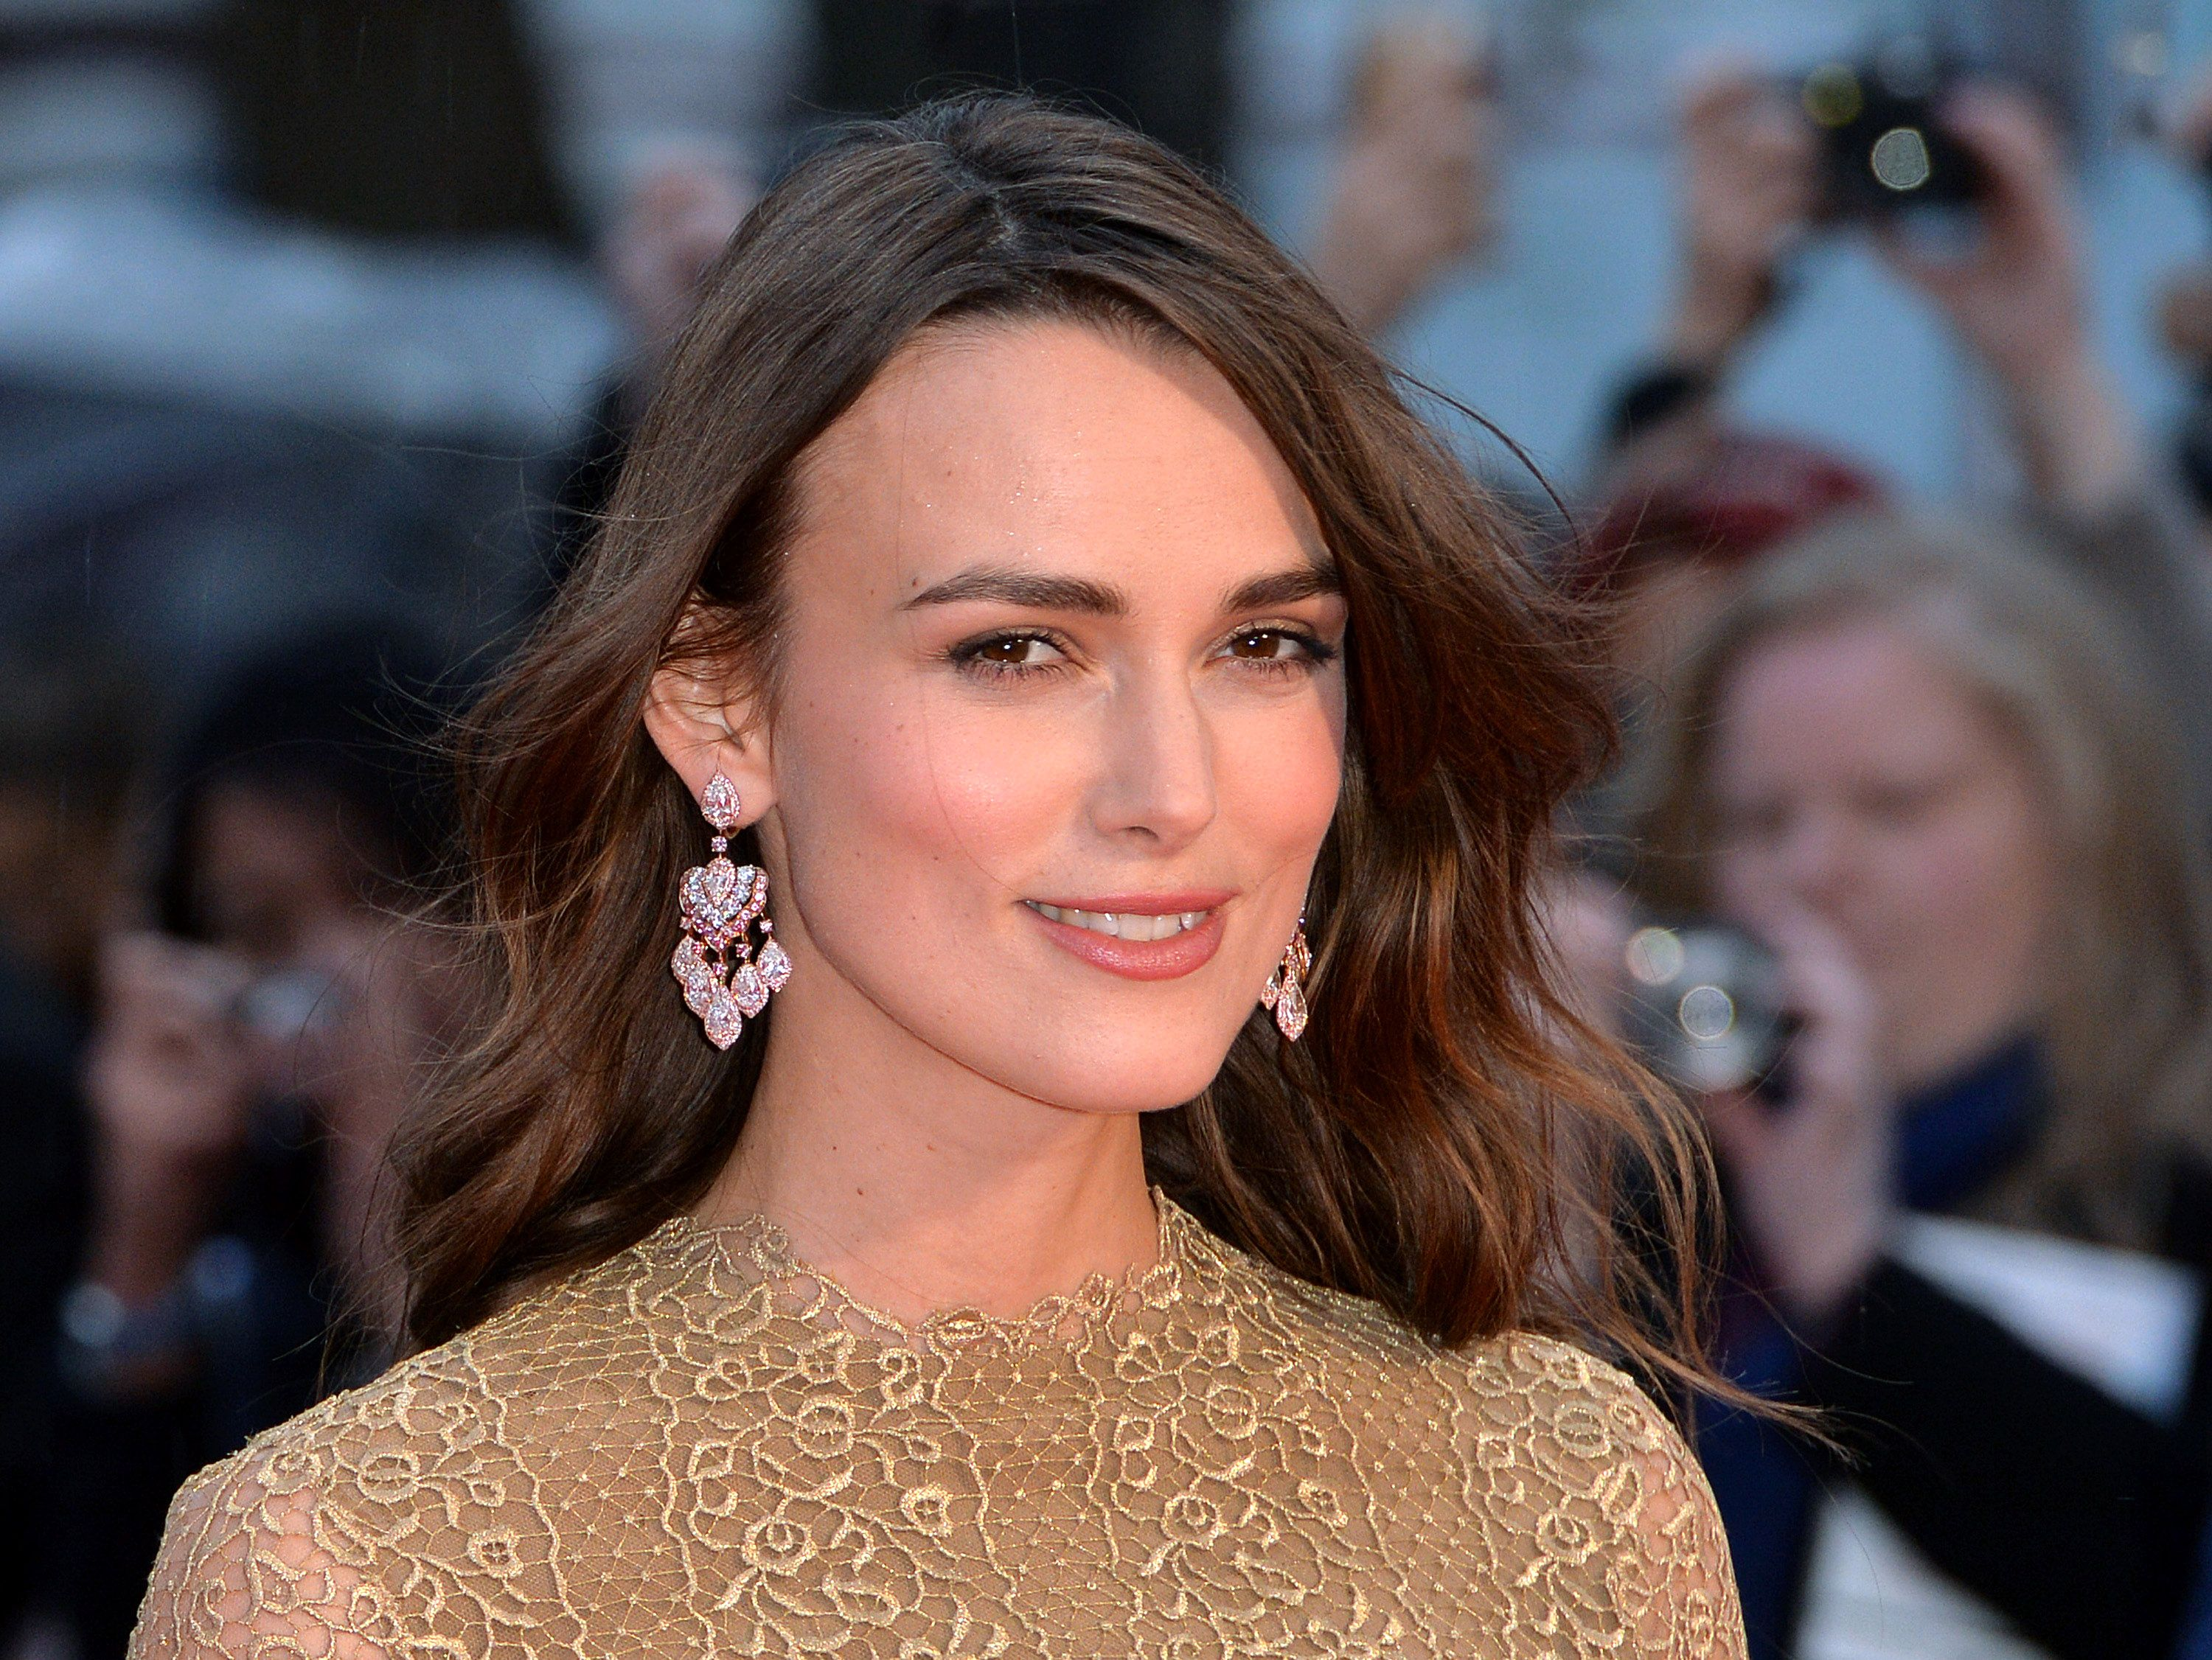 Keira Knightley says she'd play Coleen Rooney in a film